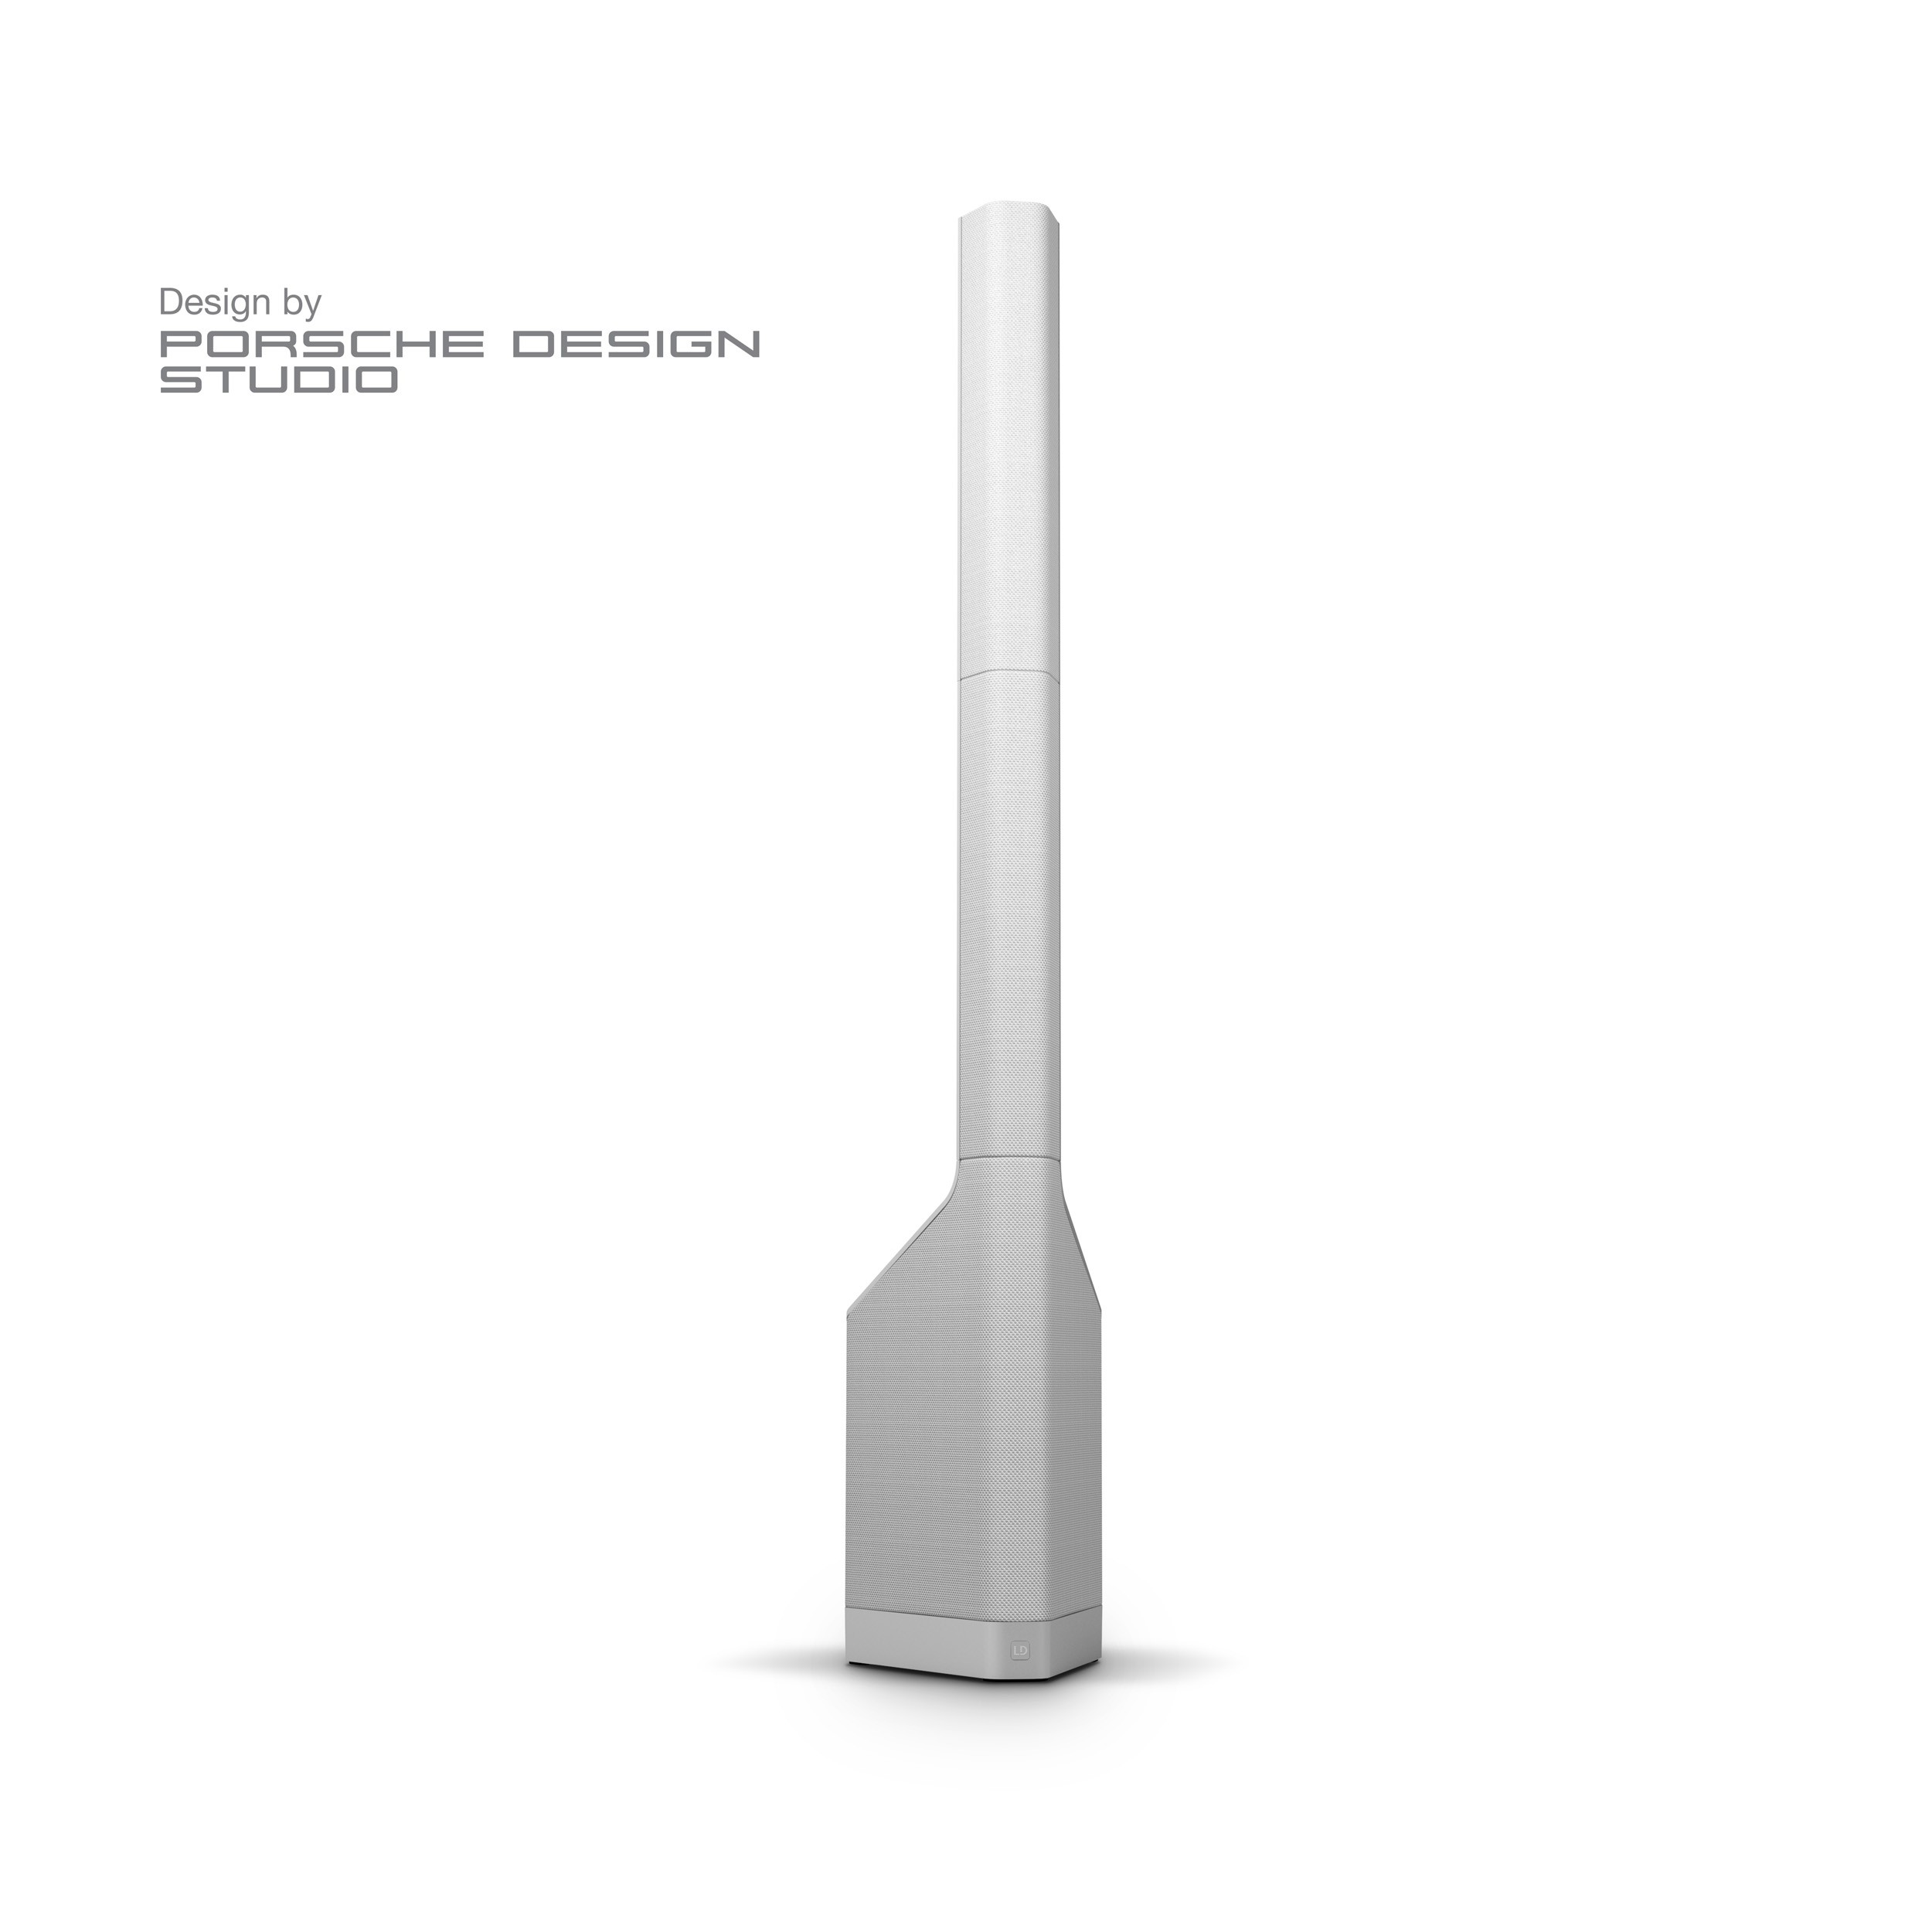 MAUI P900 W Powered Column PA System by Porsche Design Studio in Cocoon White